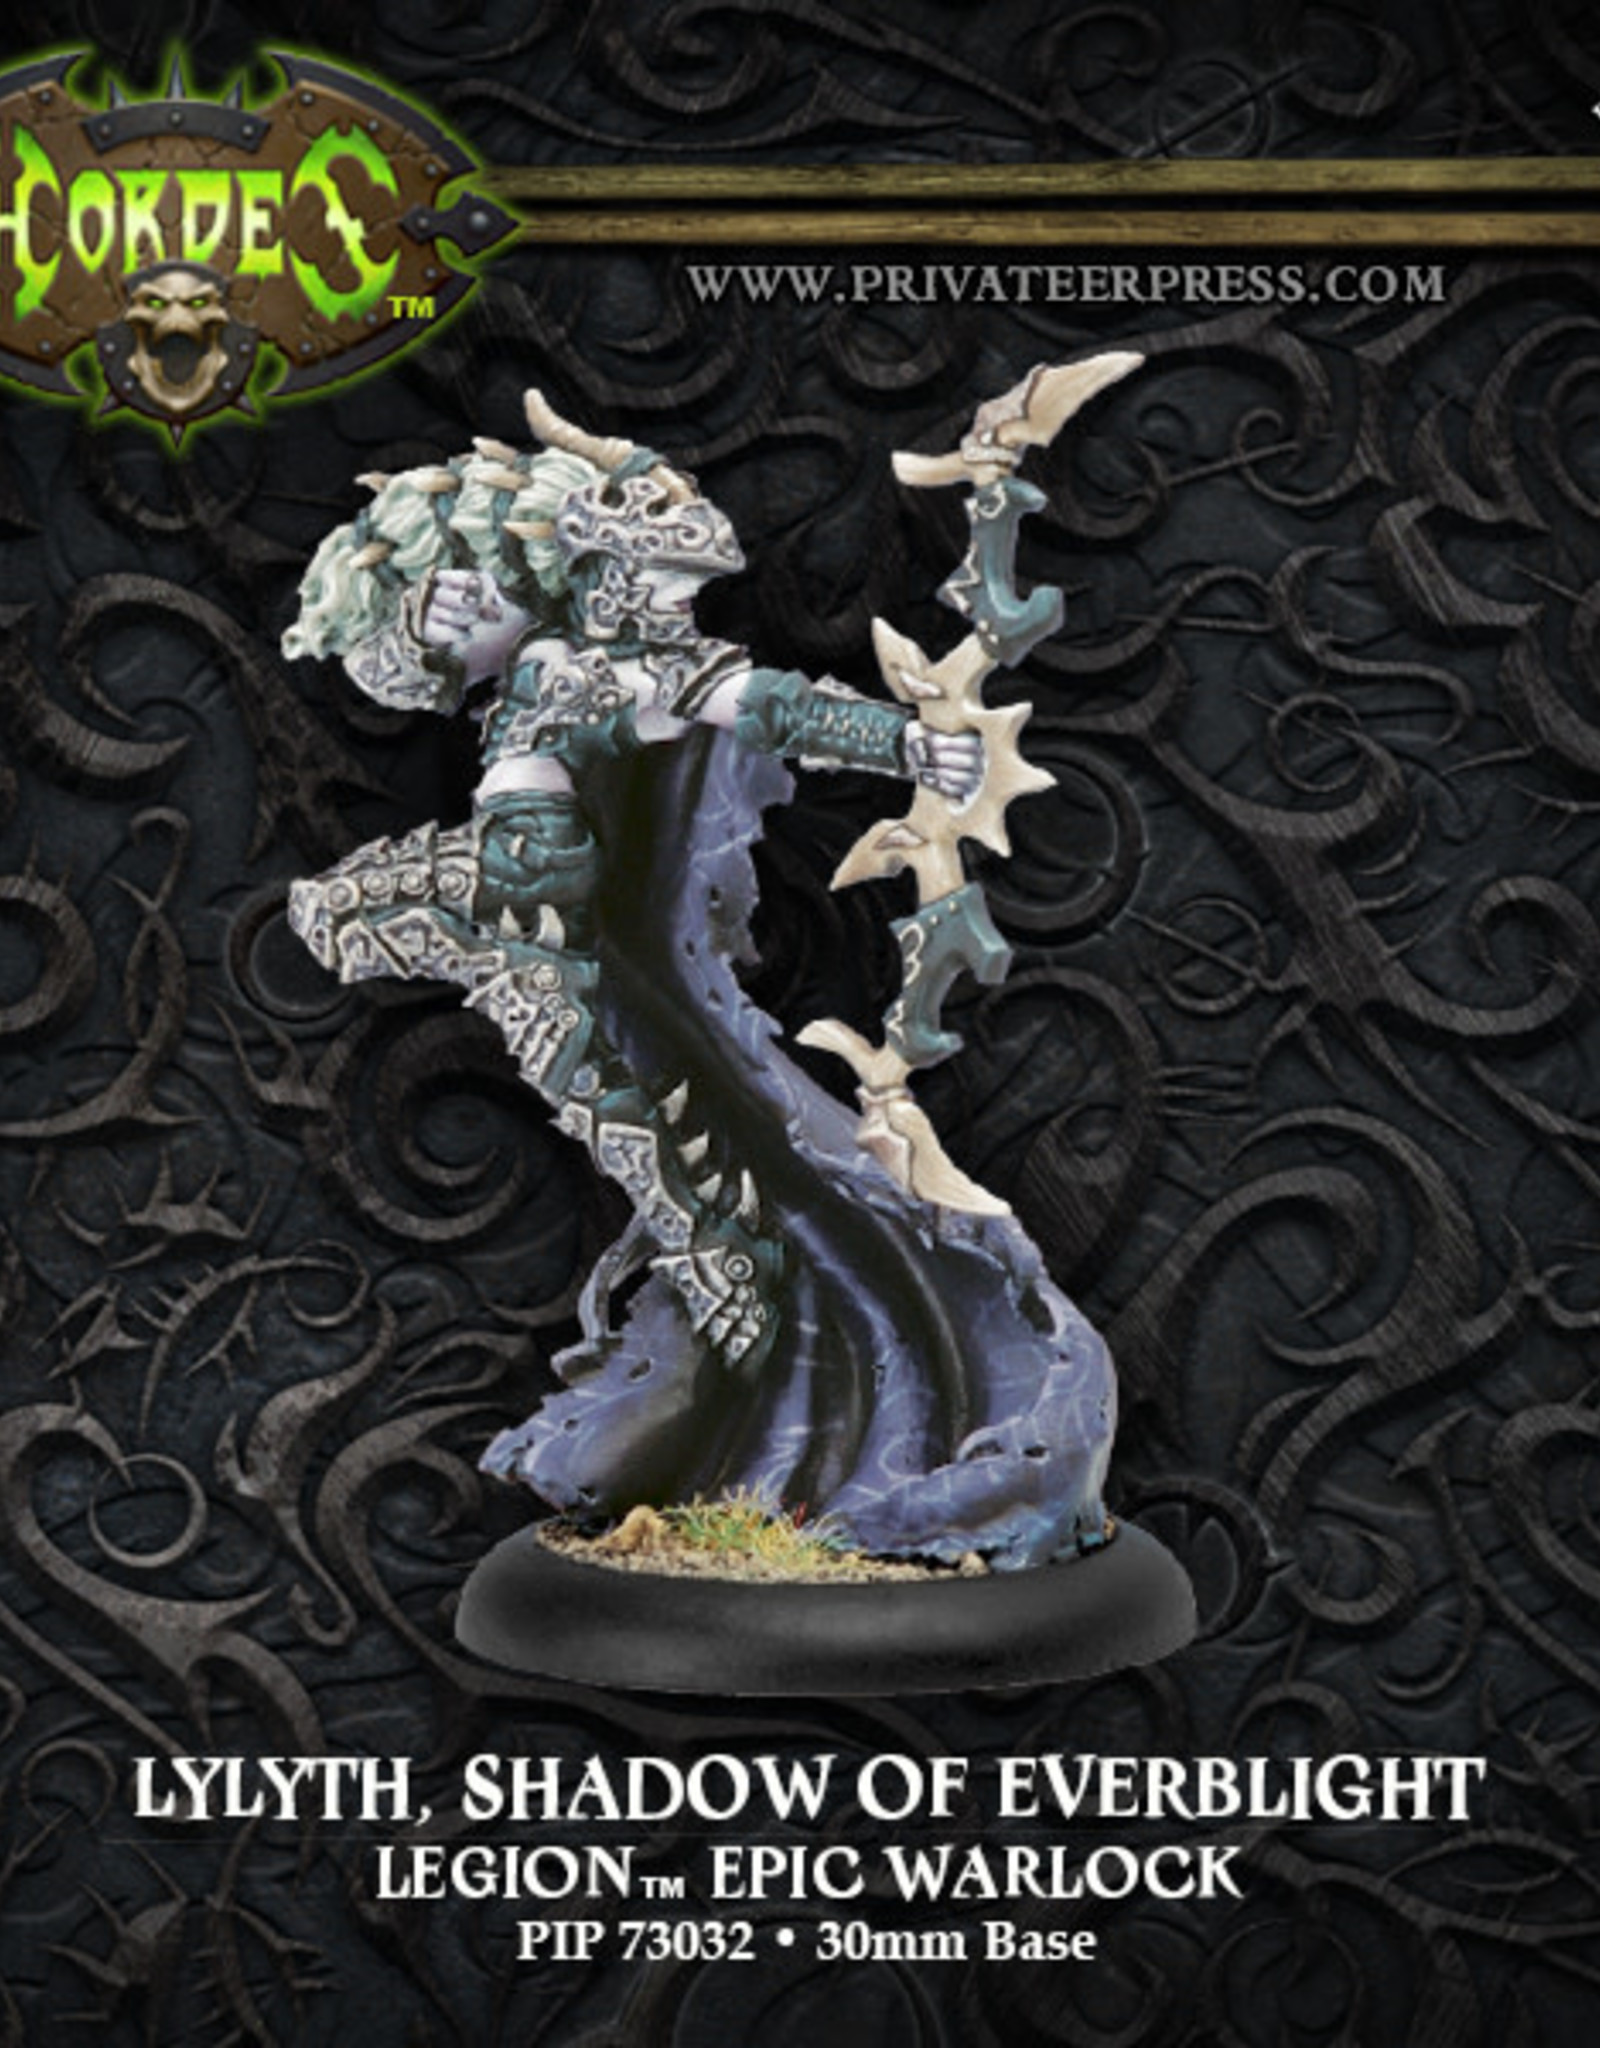 Hordes Everblight - Lylyth Shadow of Everblight